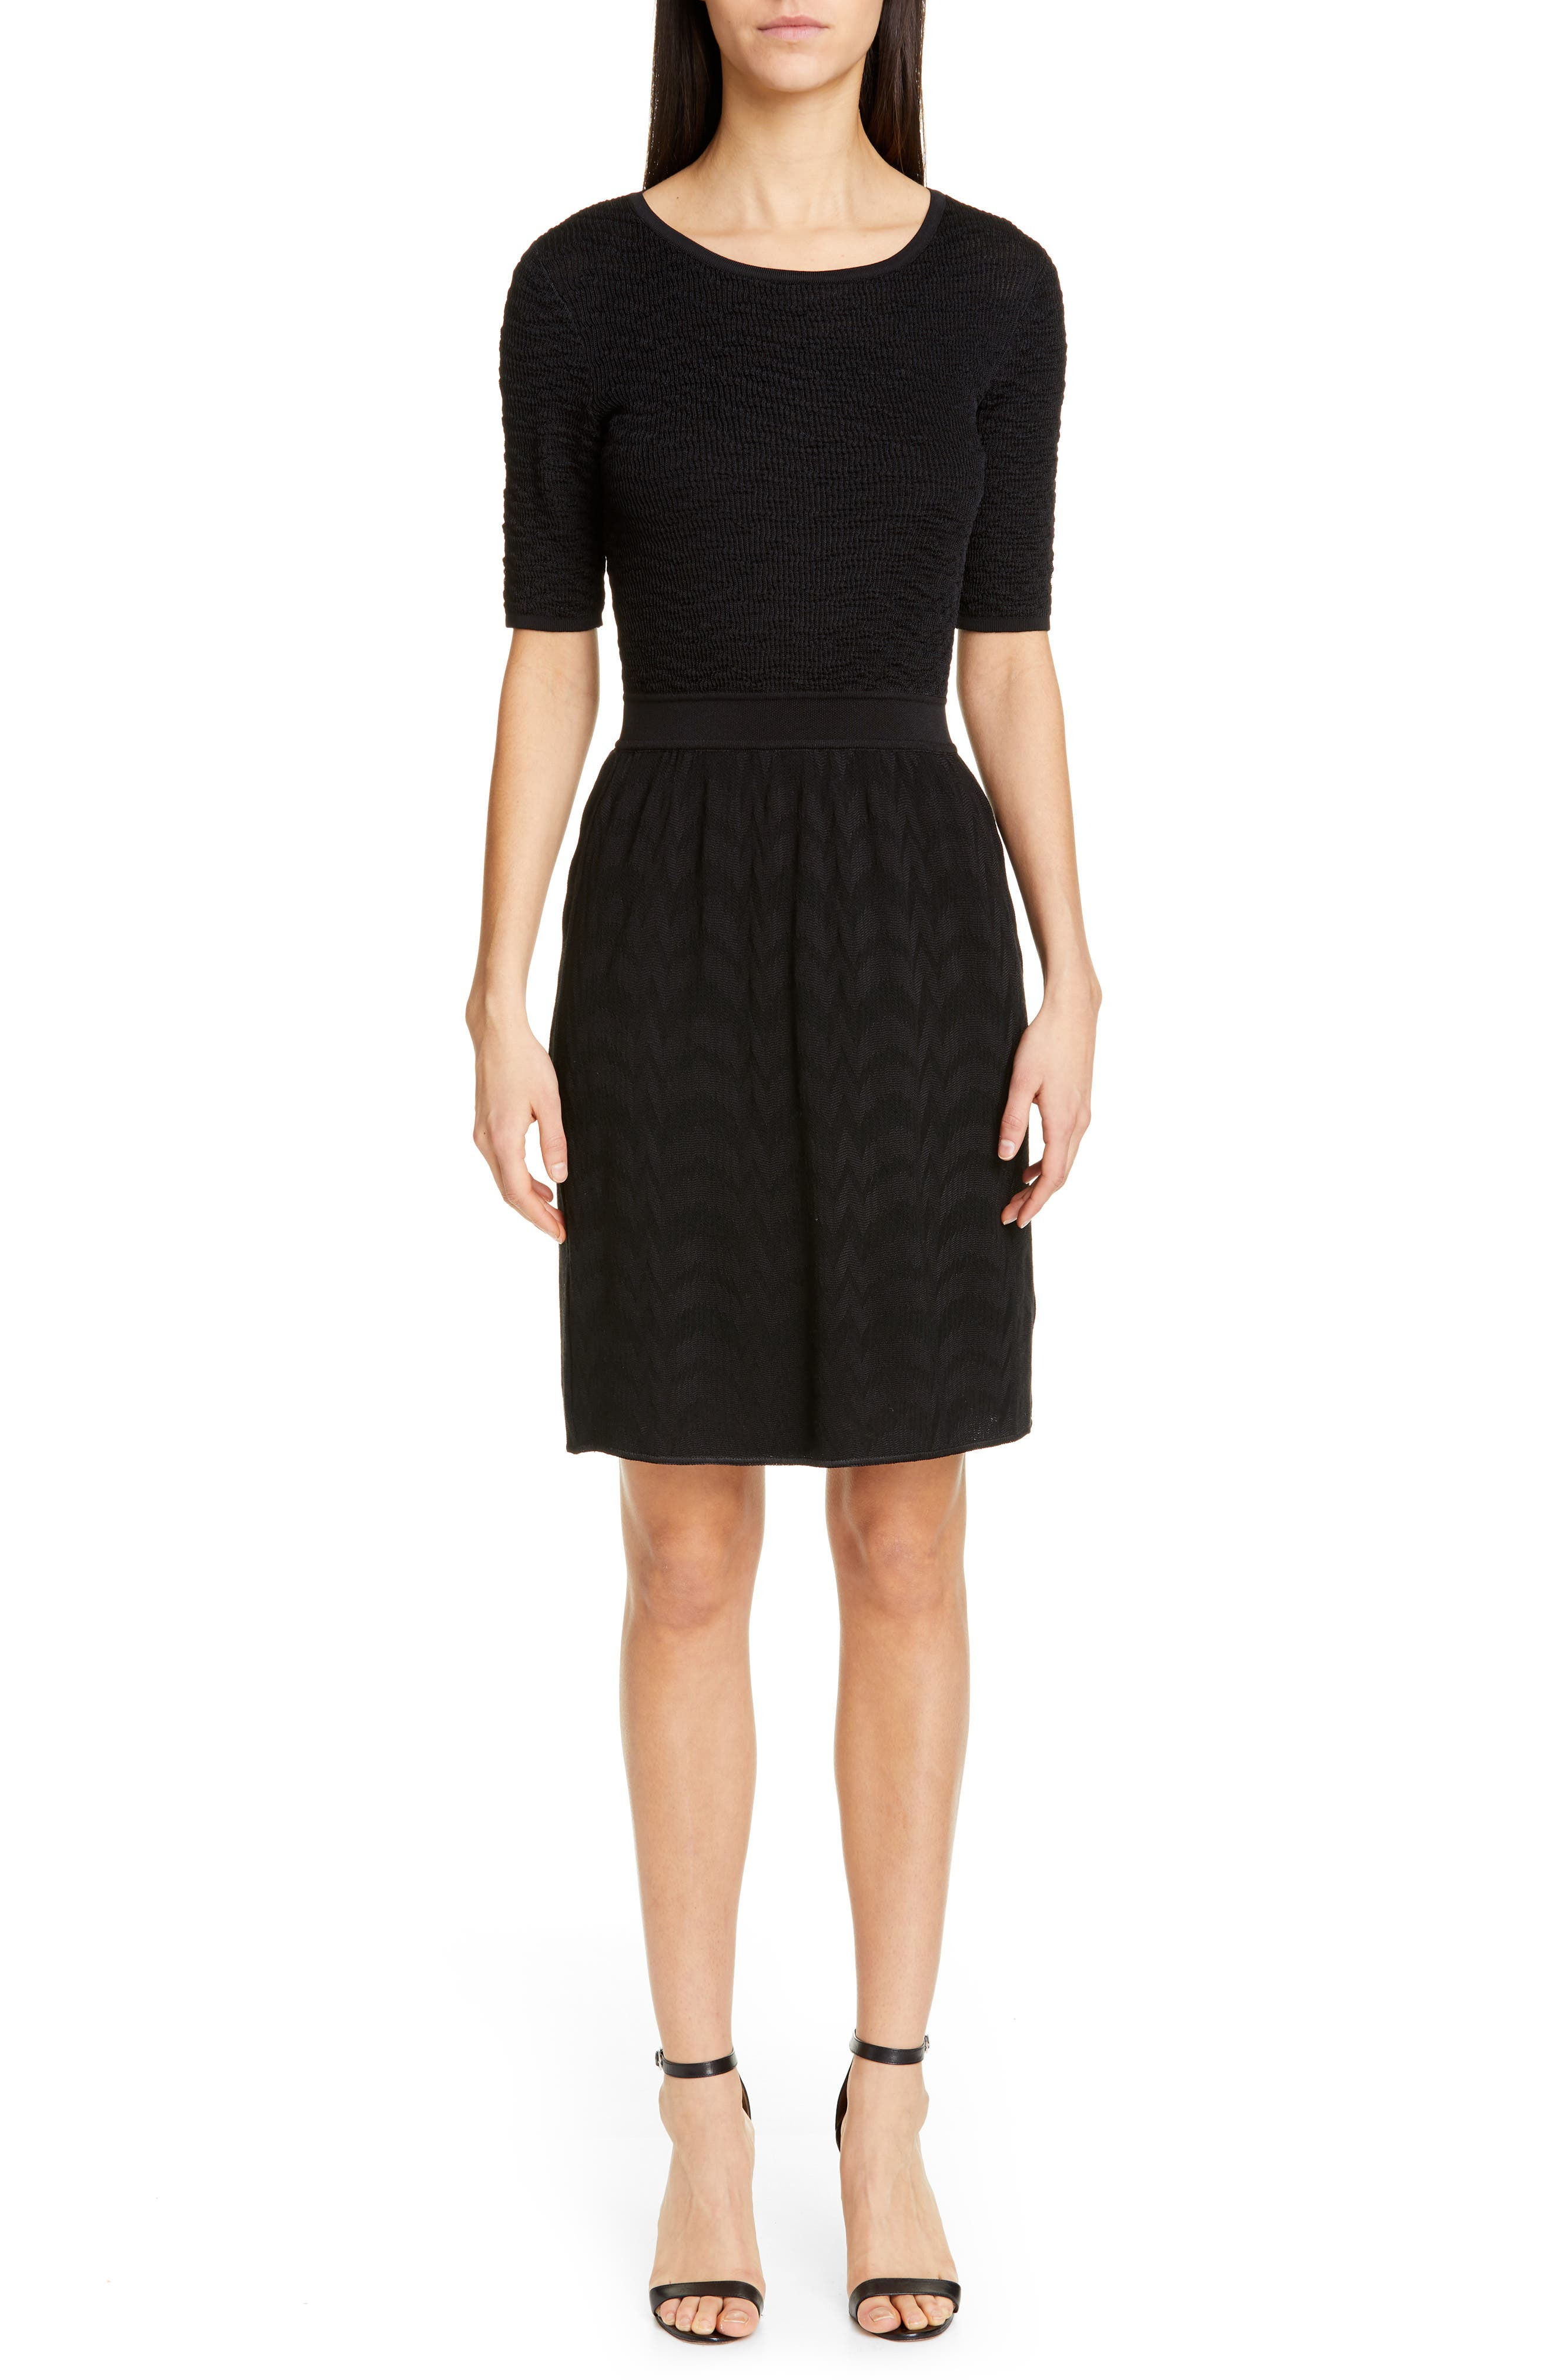 Missoni Short Sleeve Sweater Dress, 8 IT - Black (Nordstrom Exclusive)